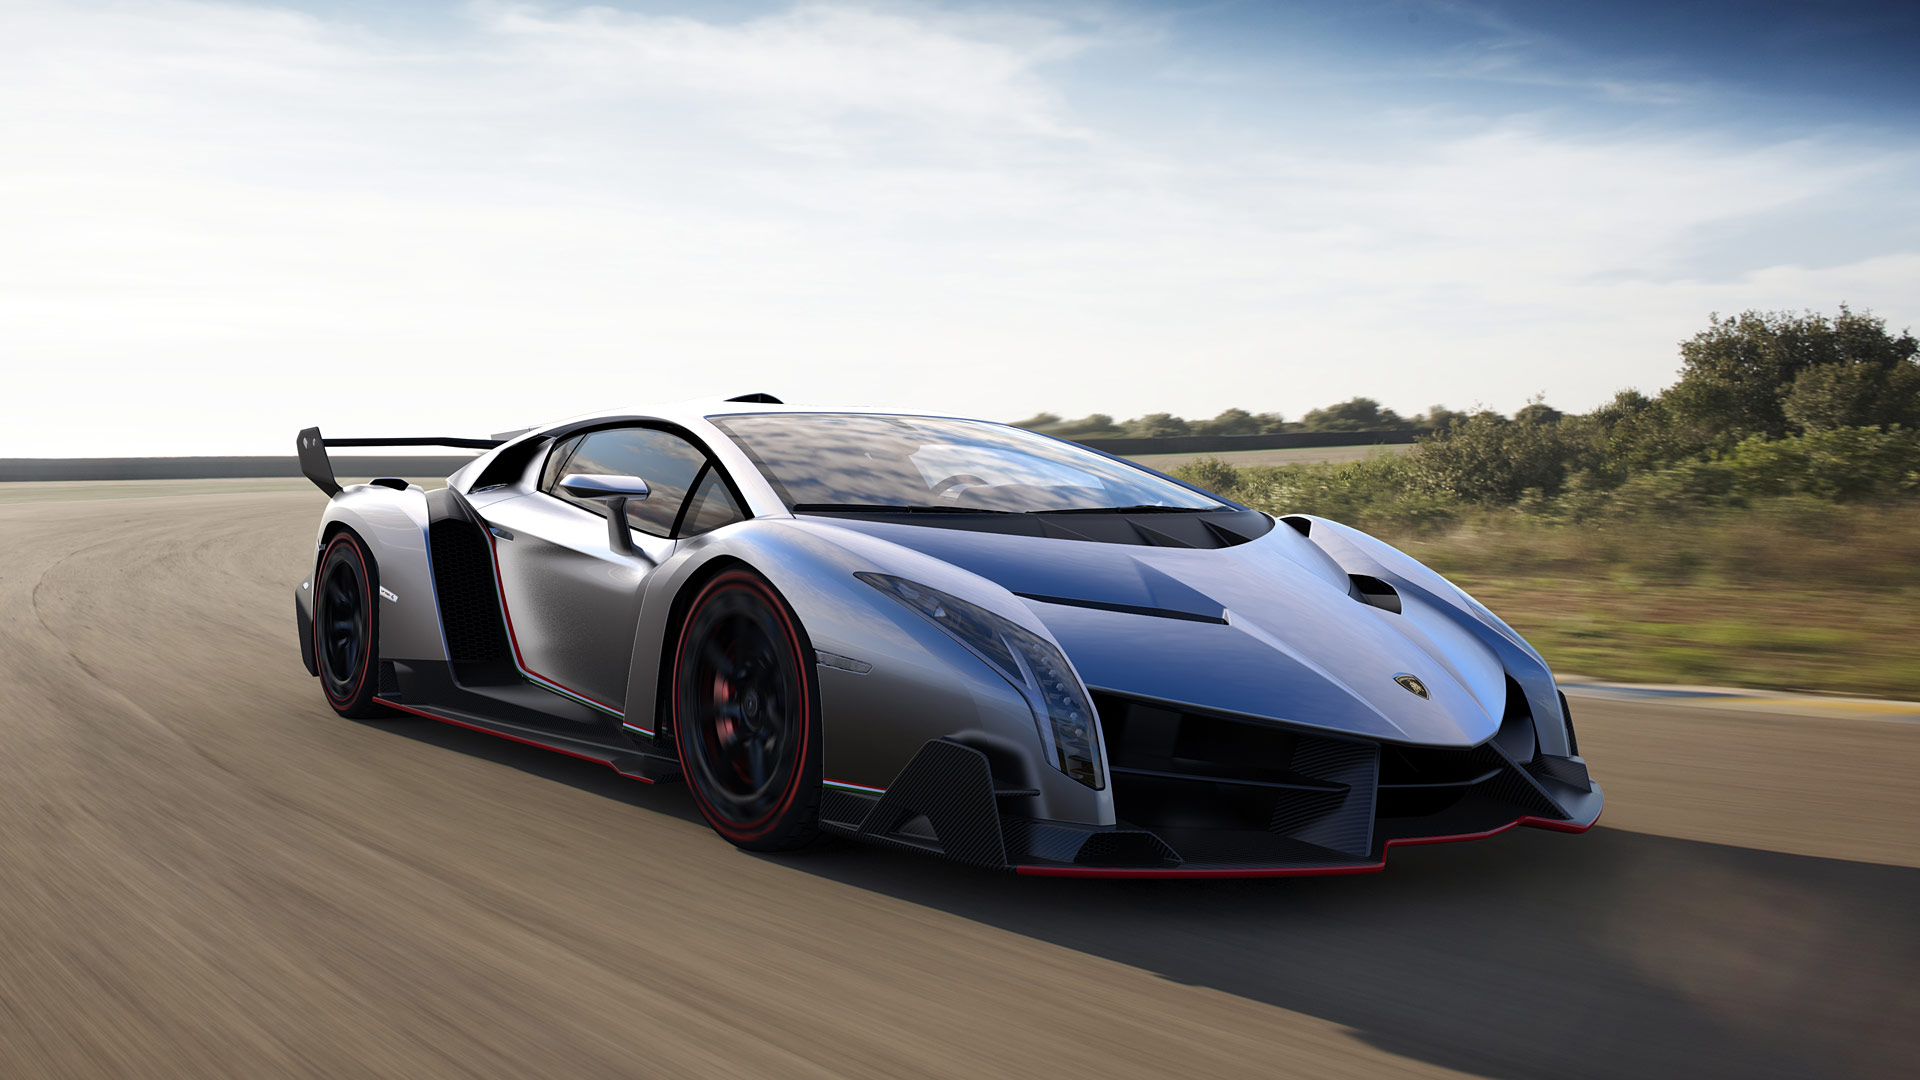 Lamborghini Veneno HD wallpaper 1080p HD Resolutions Car 1920x1080